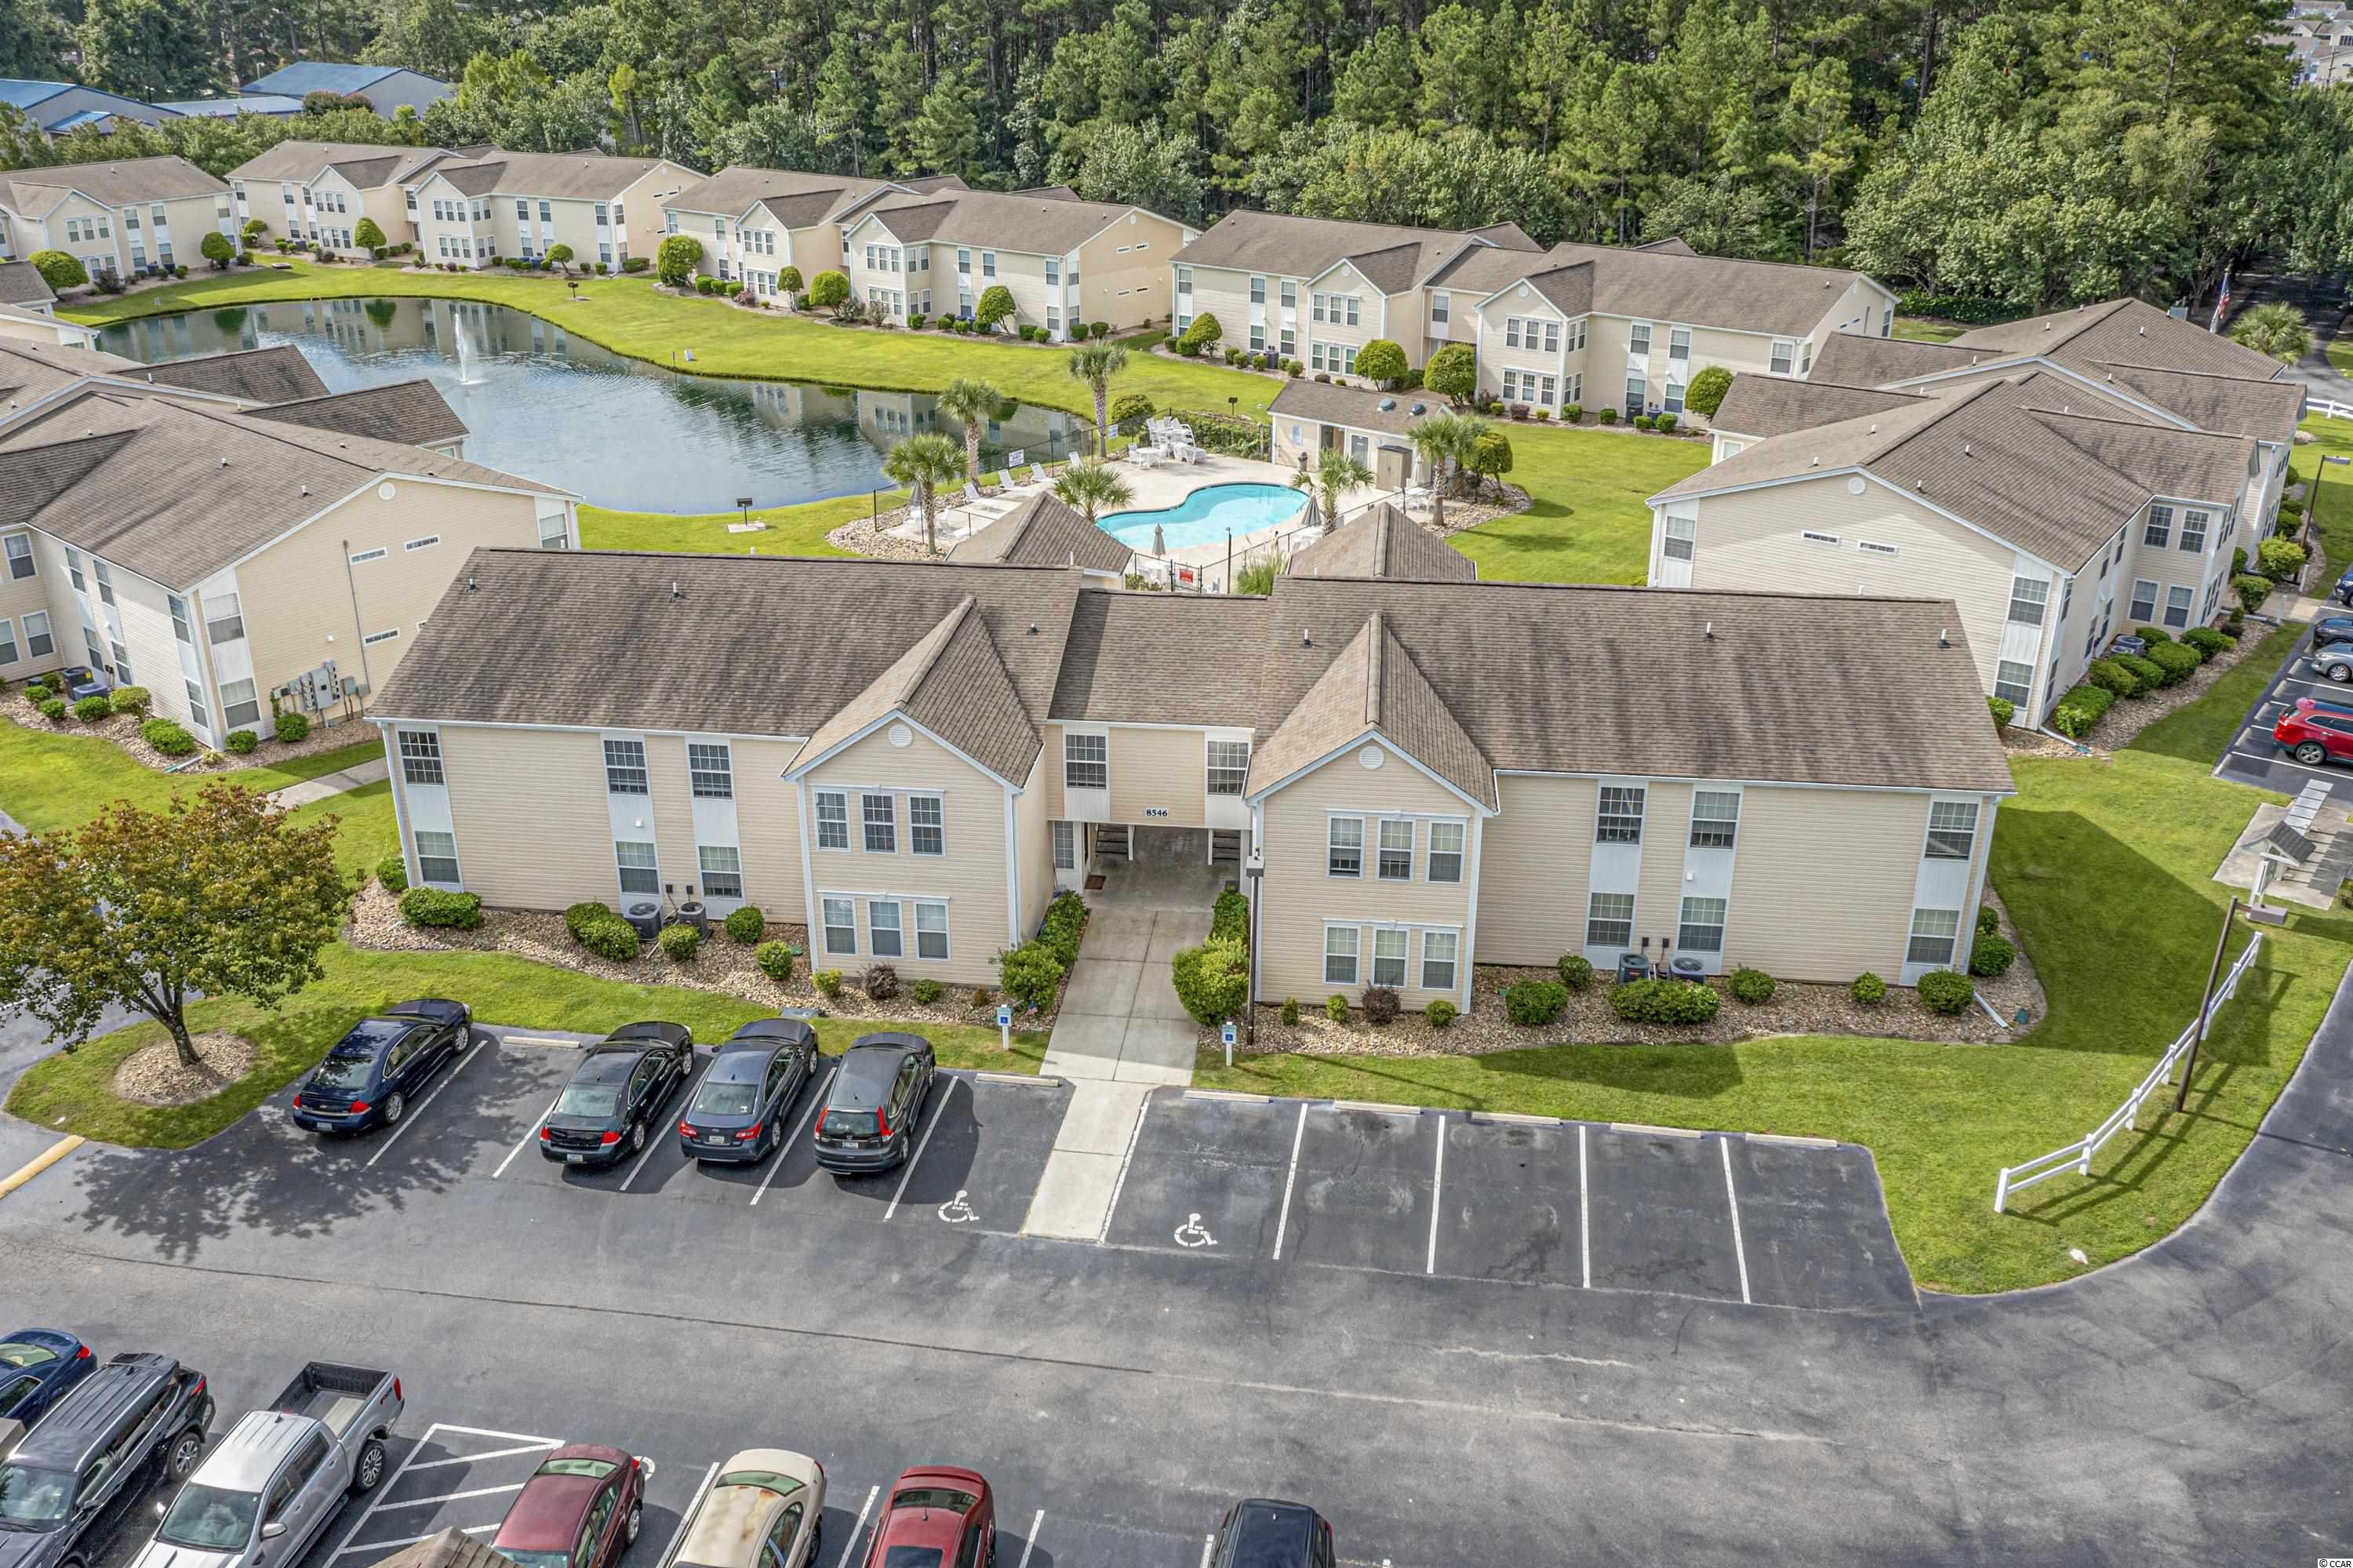 If you are looking for a great move-in-ready, second-floor condo, conveniently located in Surfside Beach, look no further! This fantastic 3 bed / 2 bath condo is located in the highly sought after community of Southbridge Villas. The unit is freshly painted, the kitchen - recently renovated, and Samsung appliances were purchased in 2020. This property would make a great investment, a second home, or your primary residence.  It is a very short drive to the beach, and it is conveniently located close to shopping, dining, and entertainment. Square footage is approximate and not guaranteed. Buyers responsible for verification.